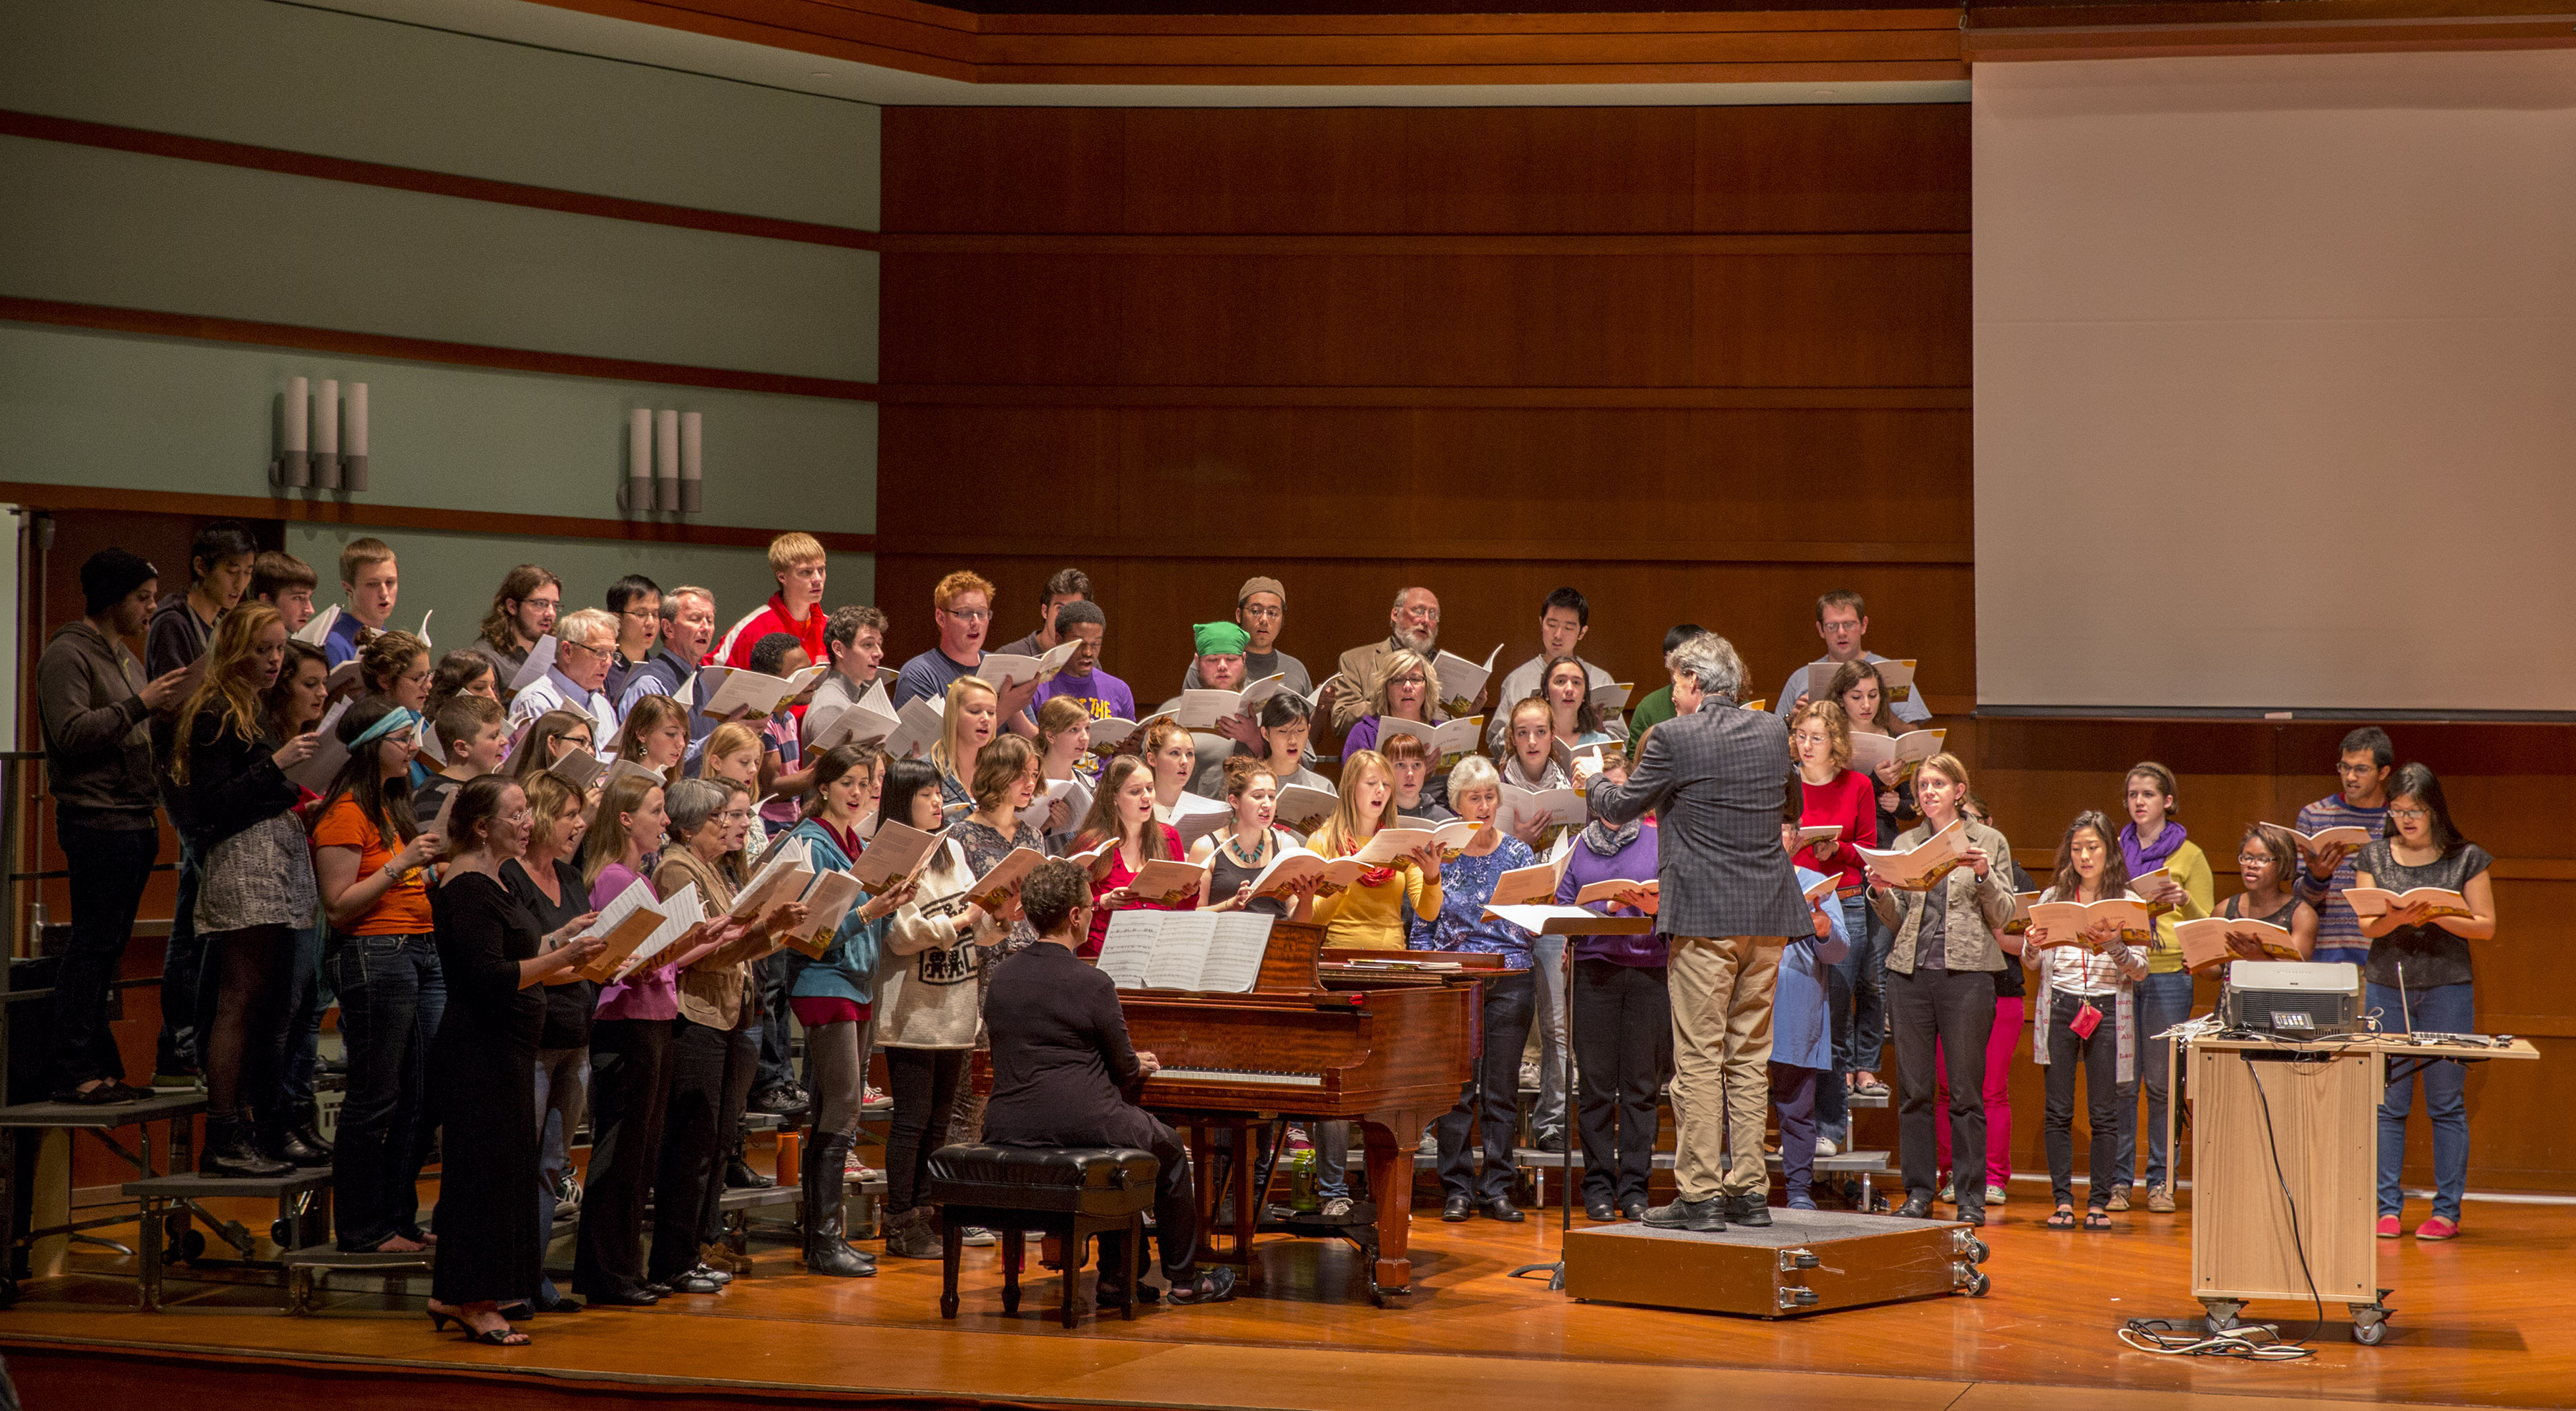 Grinnell Oratorio Society | Grinnell College